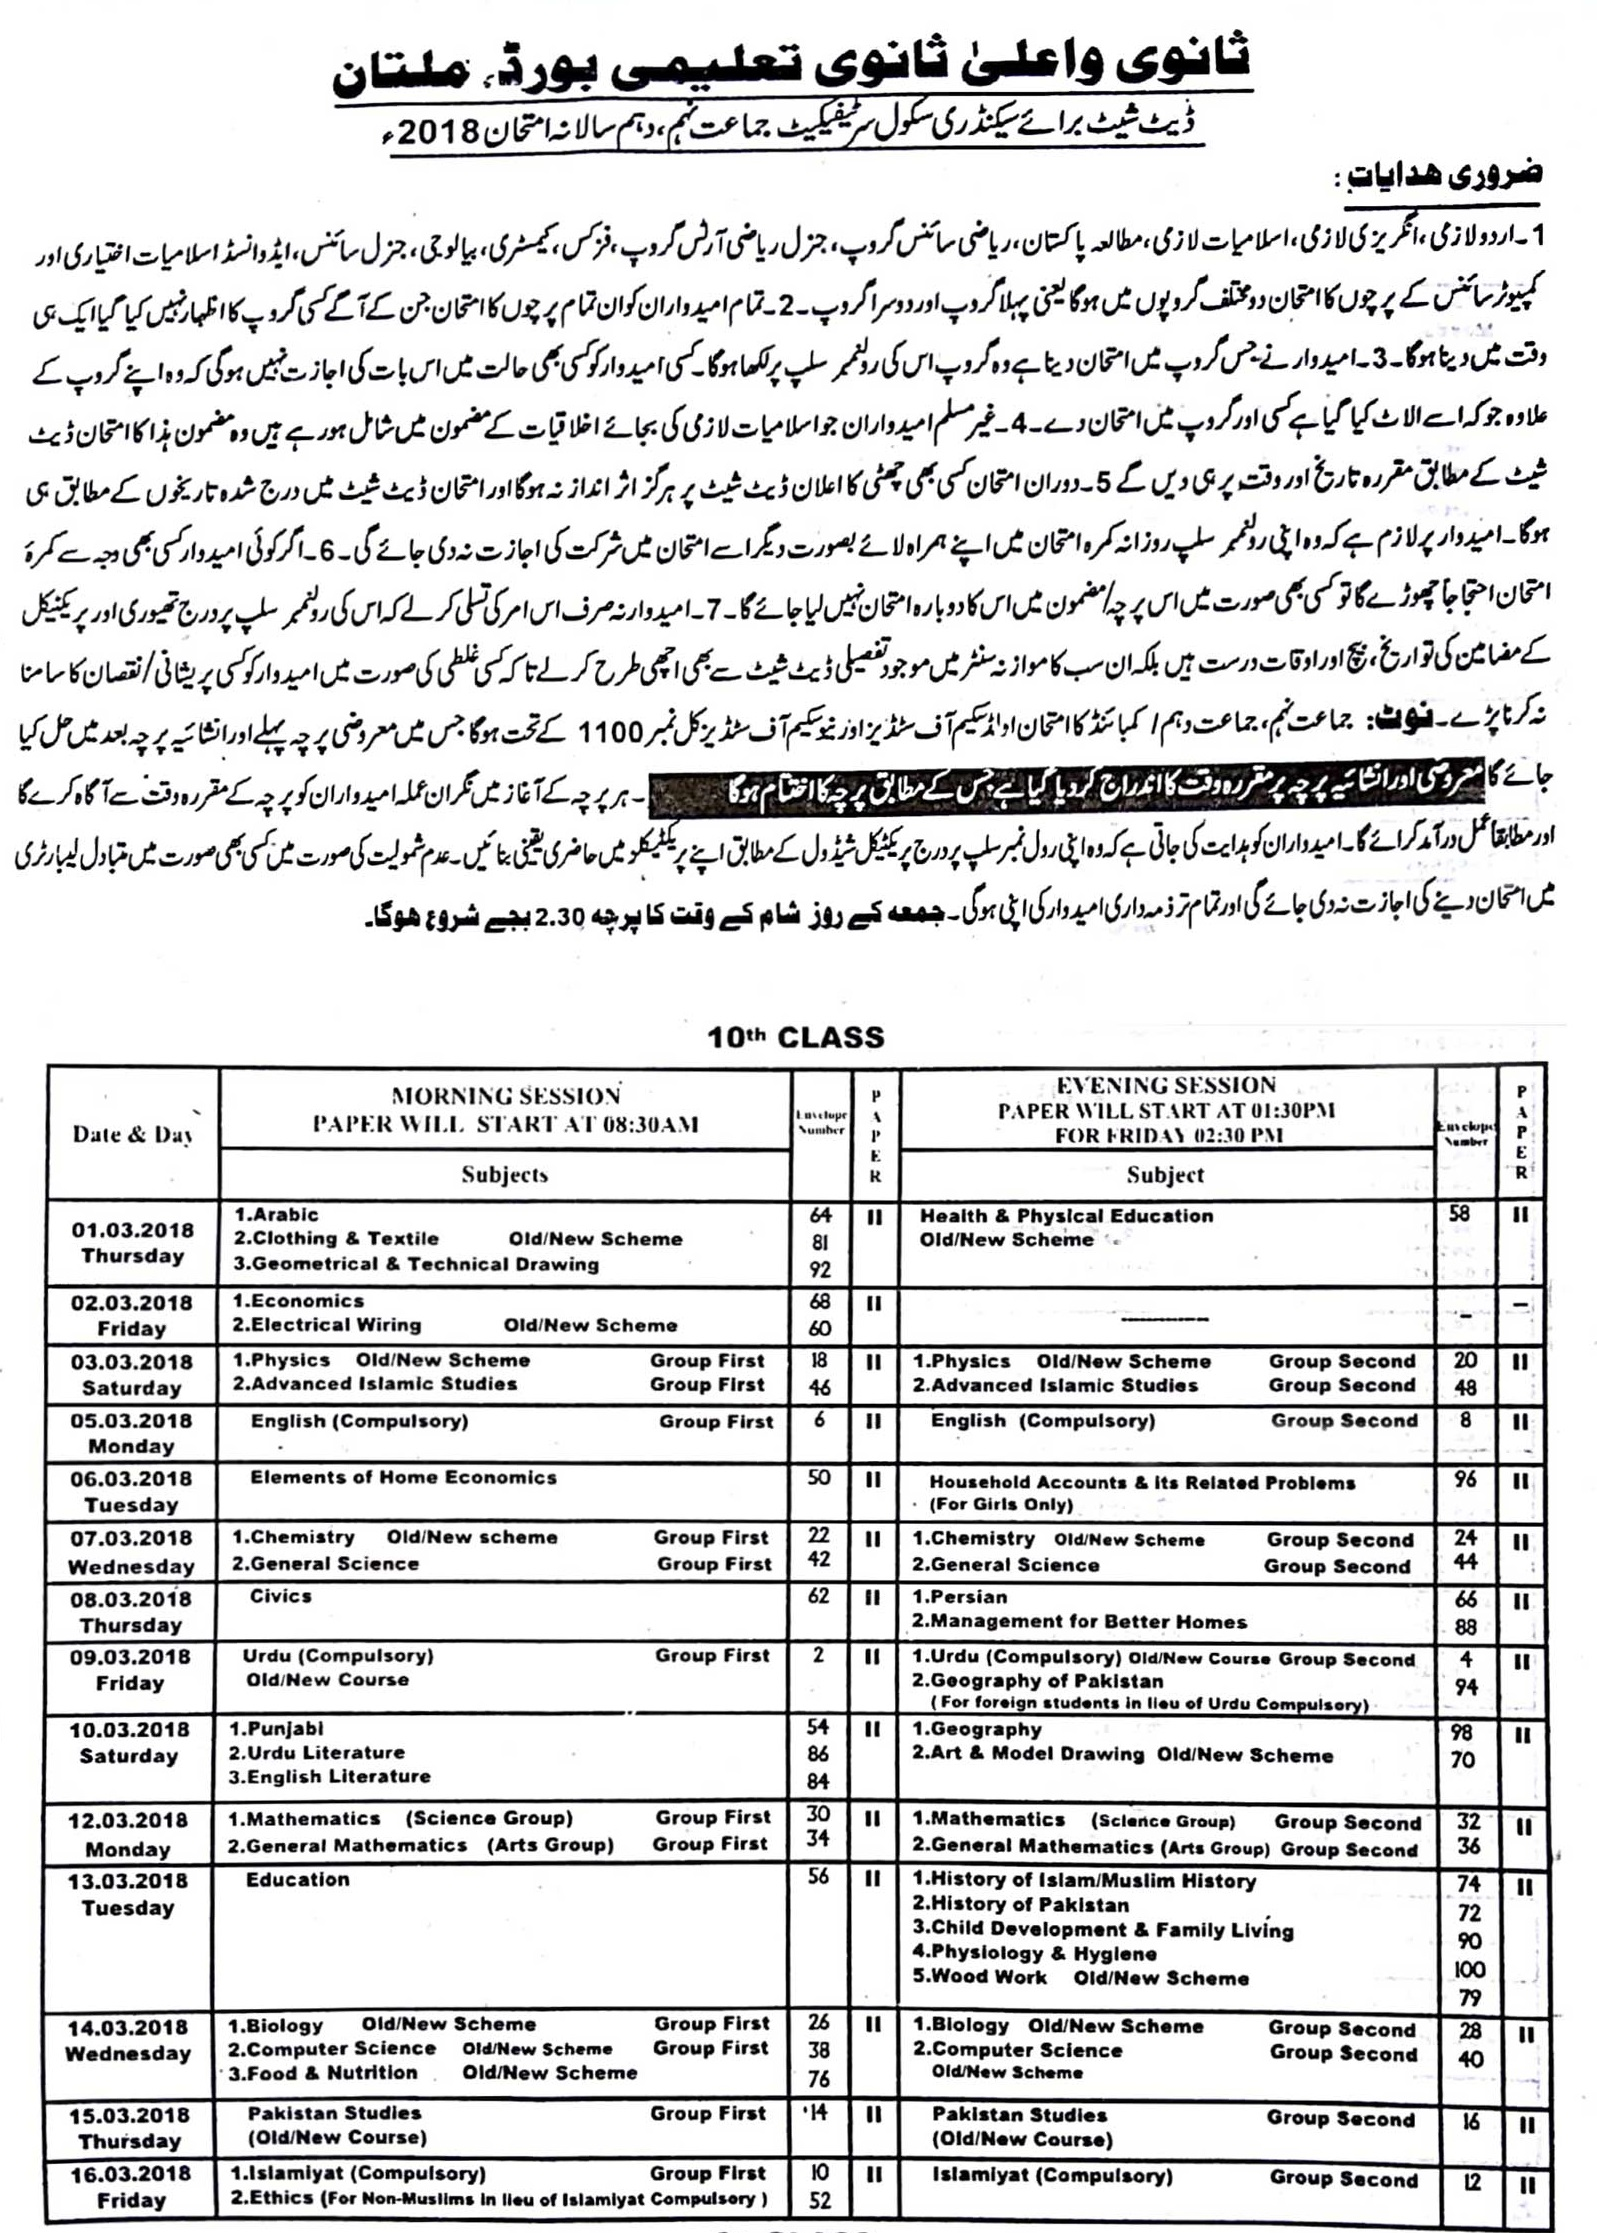 BISE Multan Board Matric 10th Class Date Sheet 2018